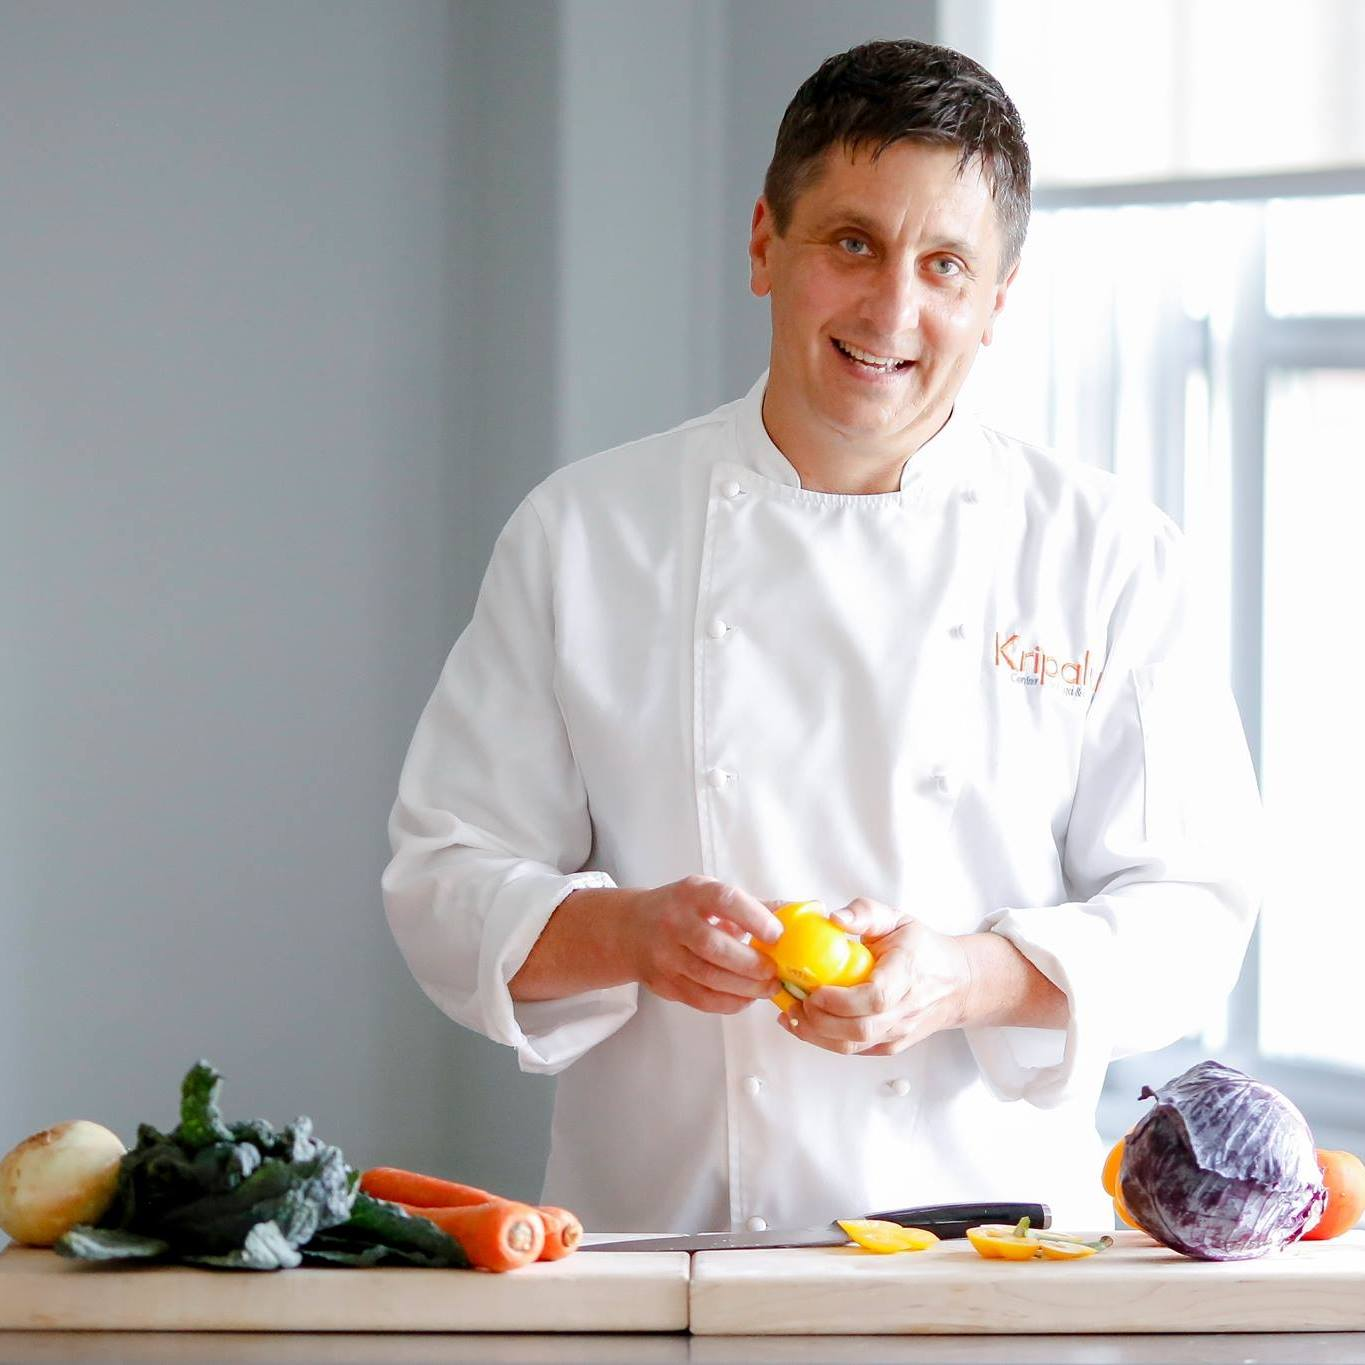 VIRTUAL: Kripalu Cooking for Kids with Chef Jeremy Rock Smith